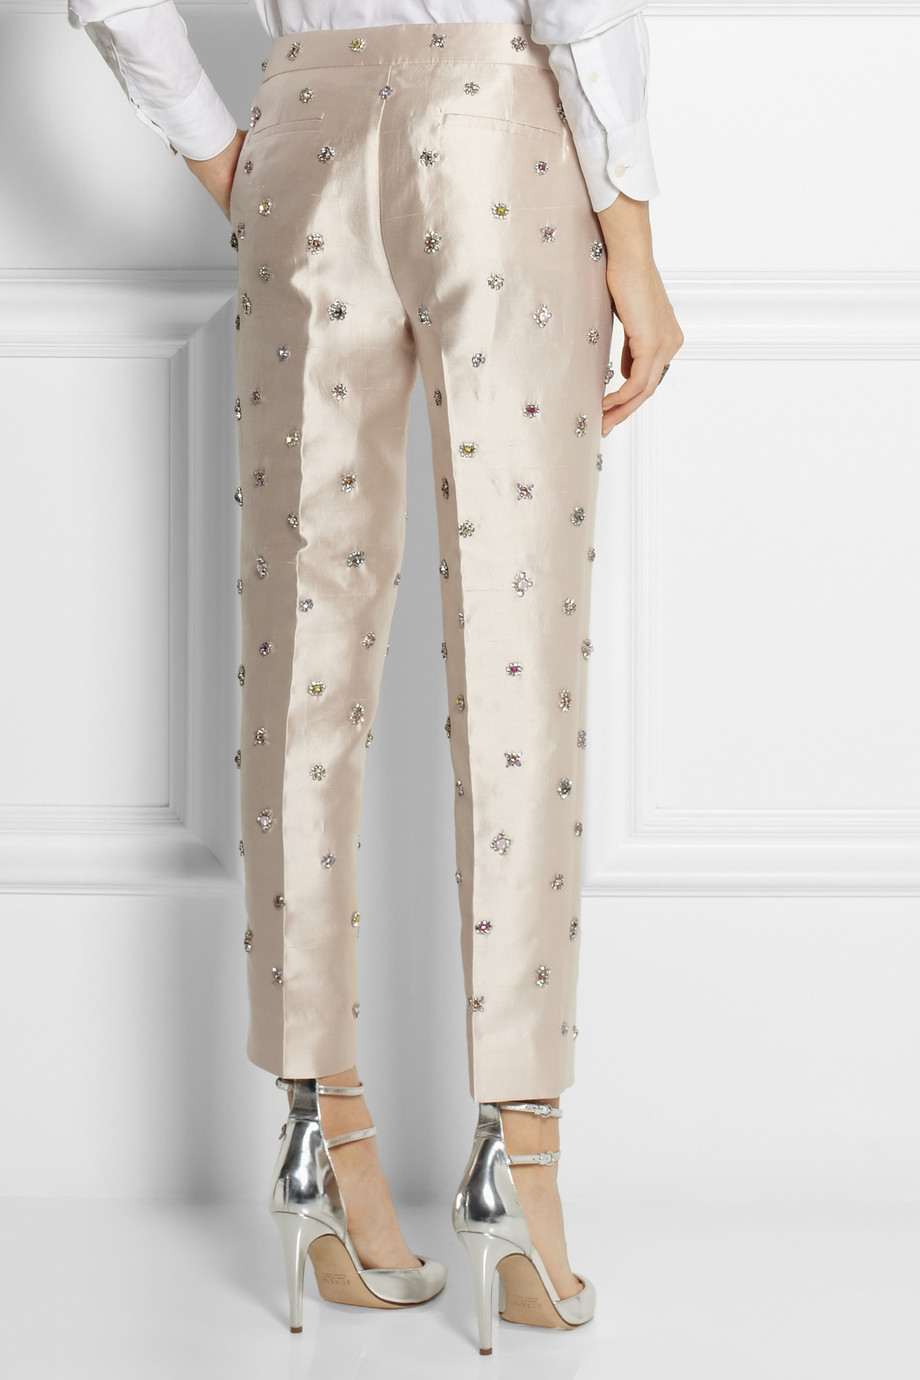 Jcrew Collection Embellished Shantung StraightLeg Pants in White  Lyst